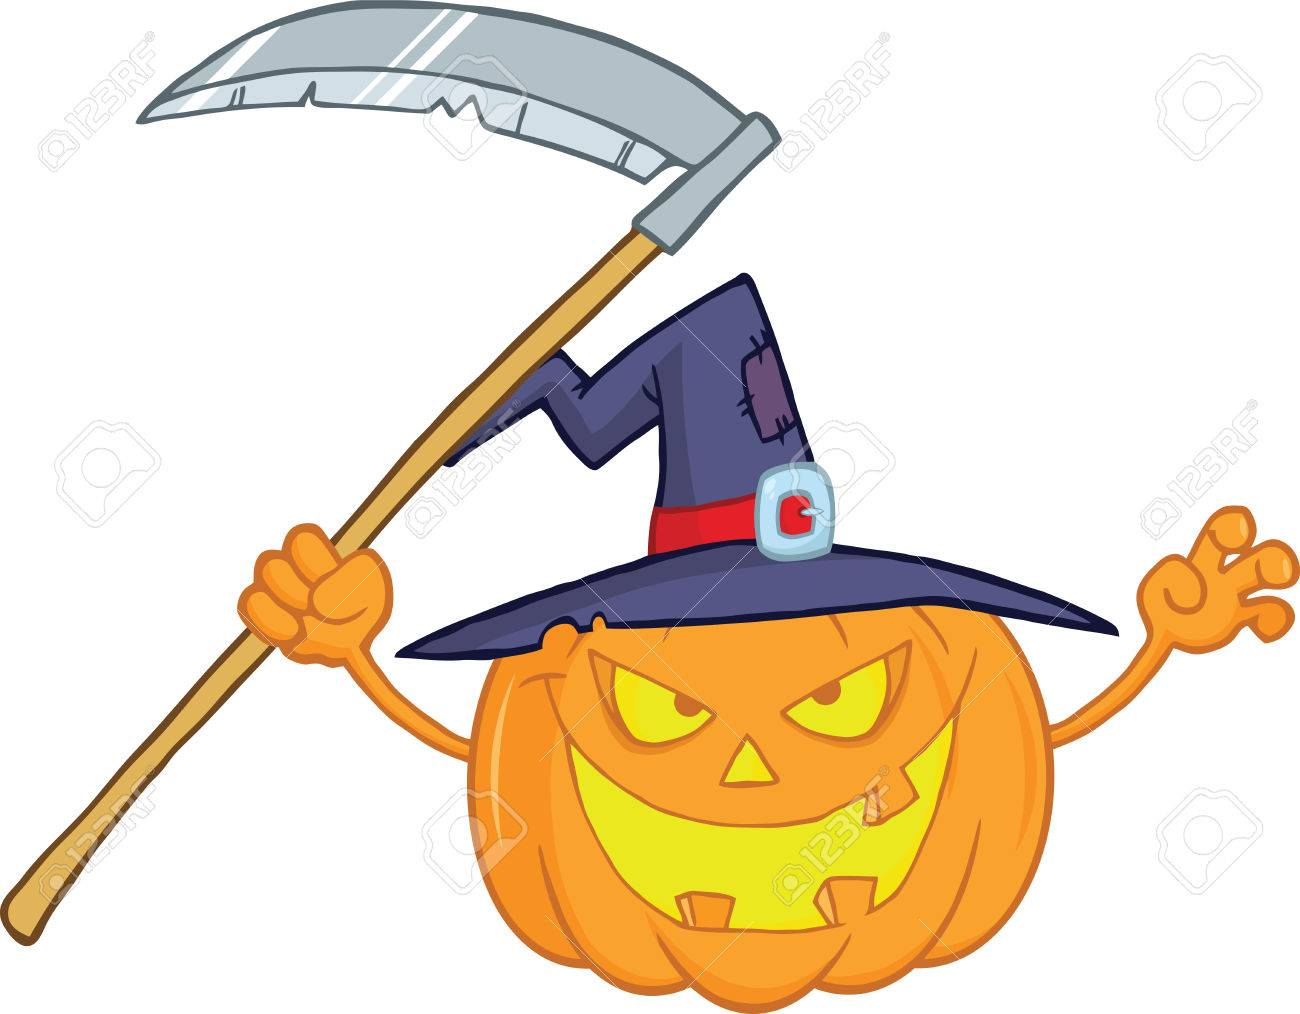 Scaring Halloween Pumpkin With A Witch Hat And Scythe Cartoon Illustration Stock Vector